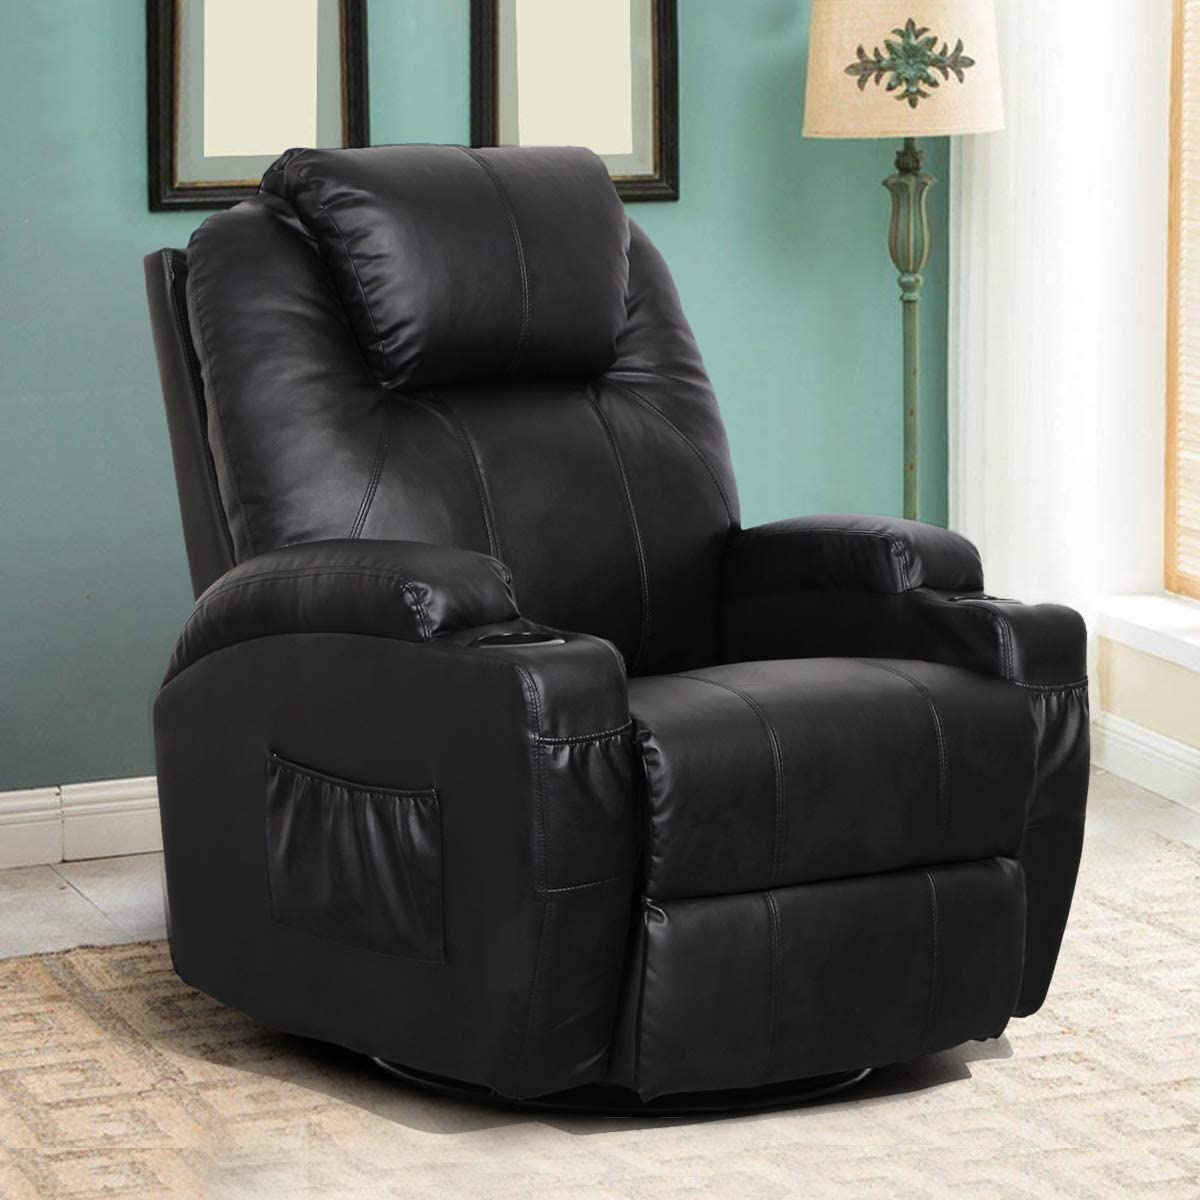 Best quality leather recliner: Esright Massage Recliner Chair